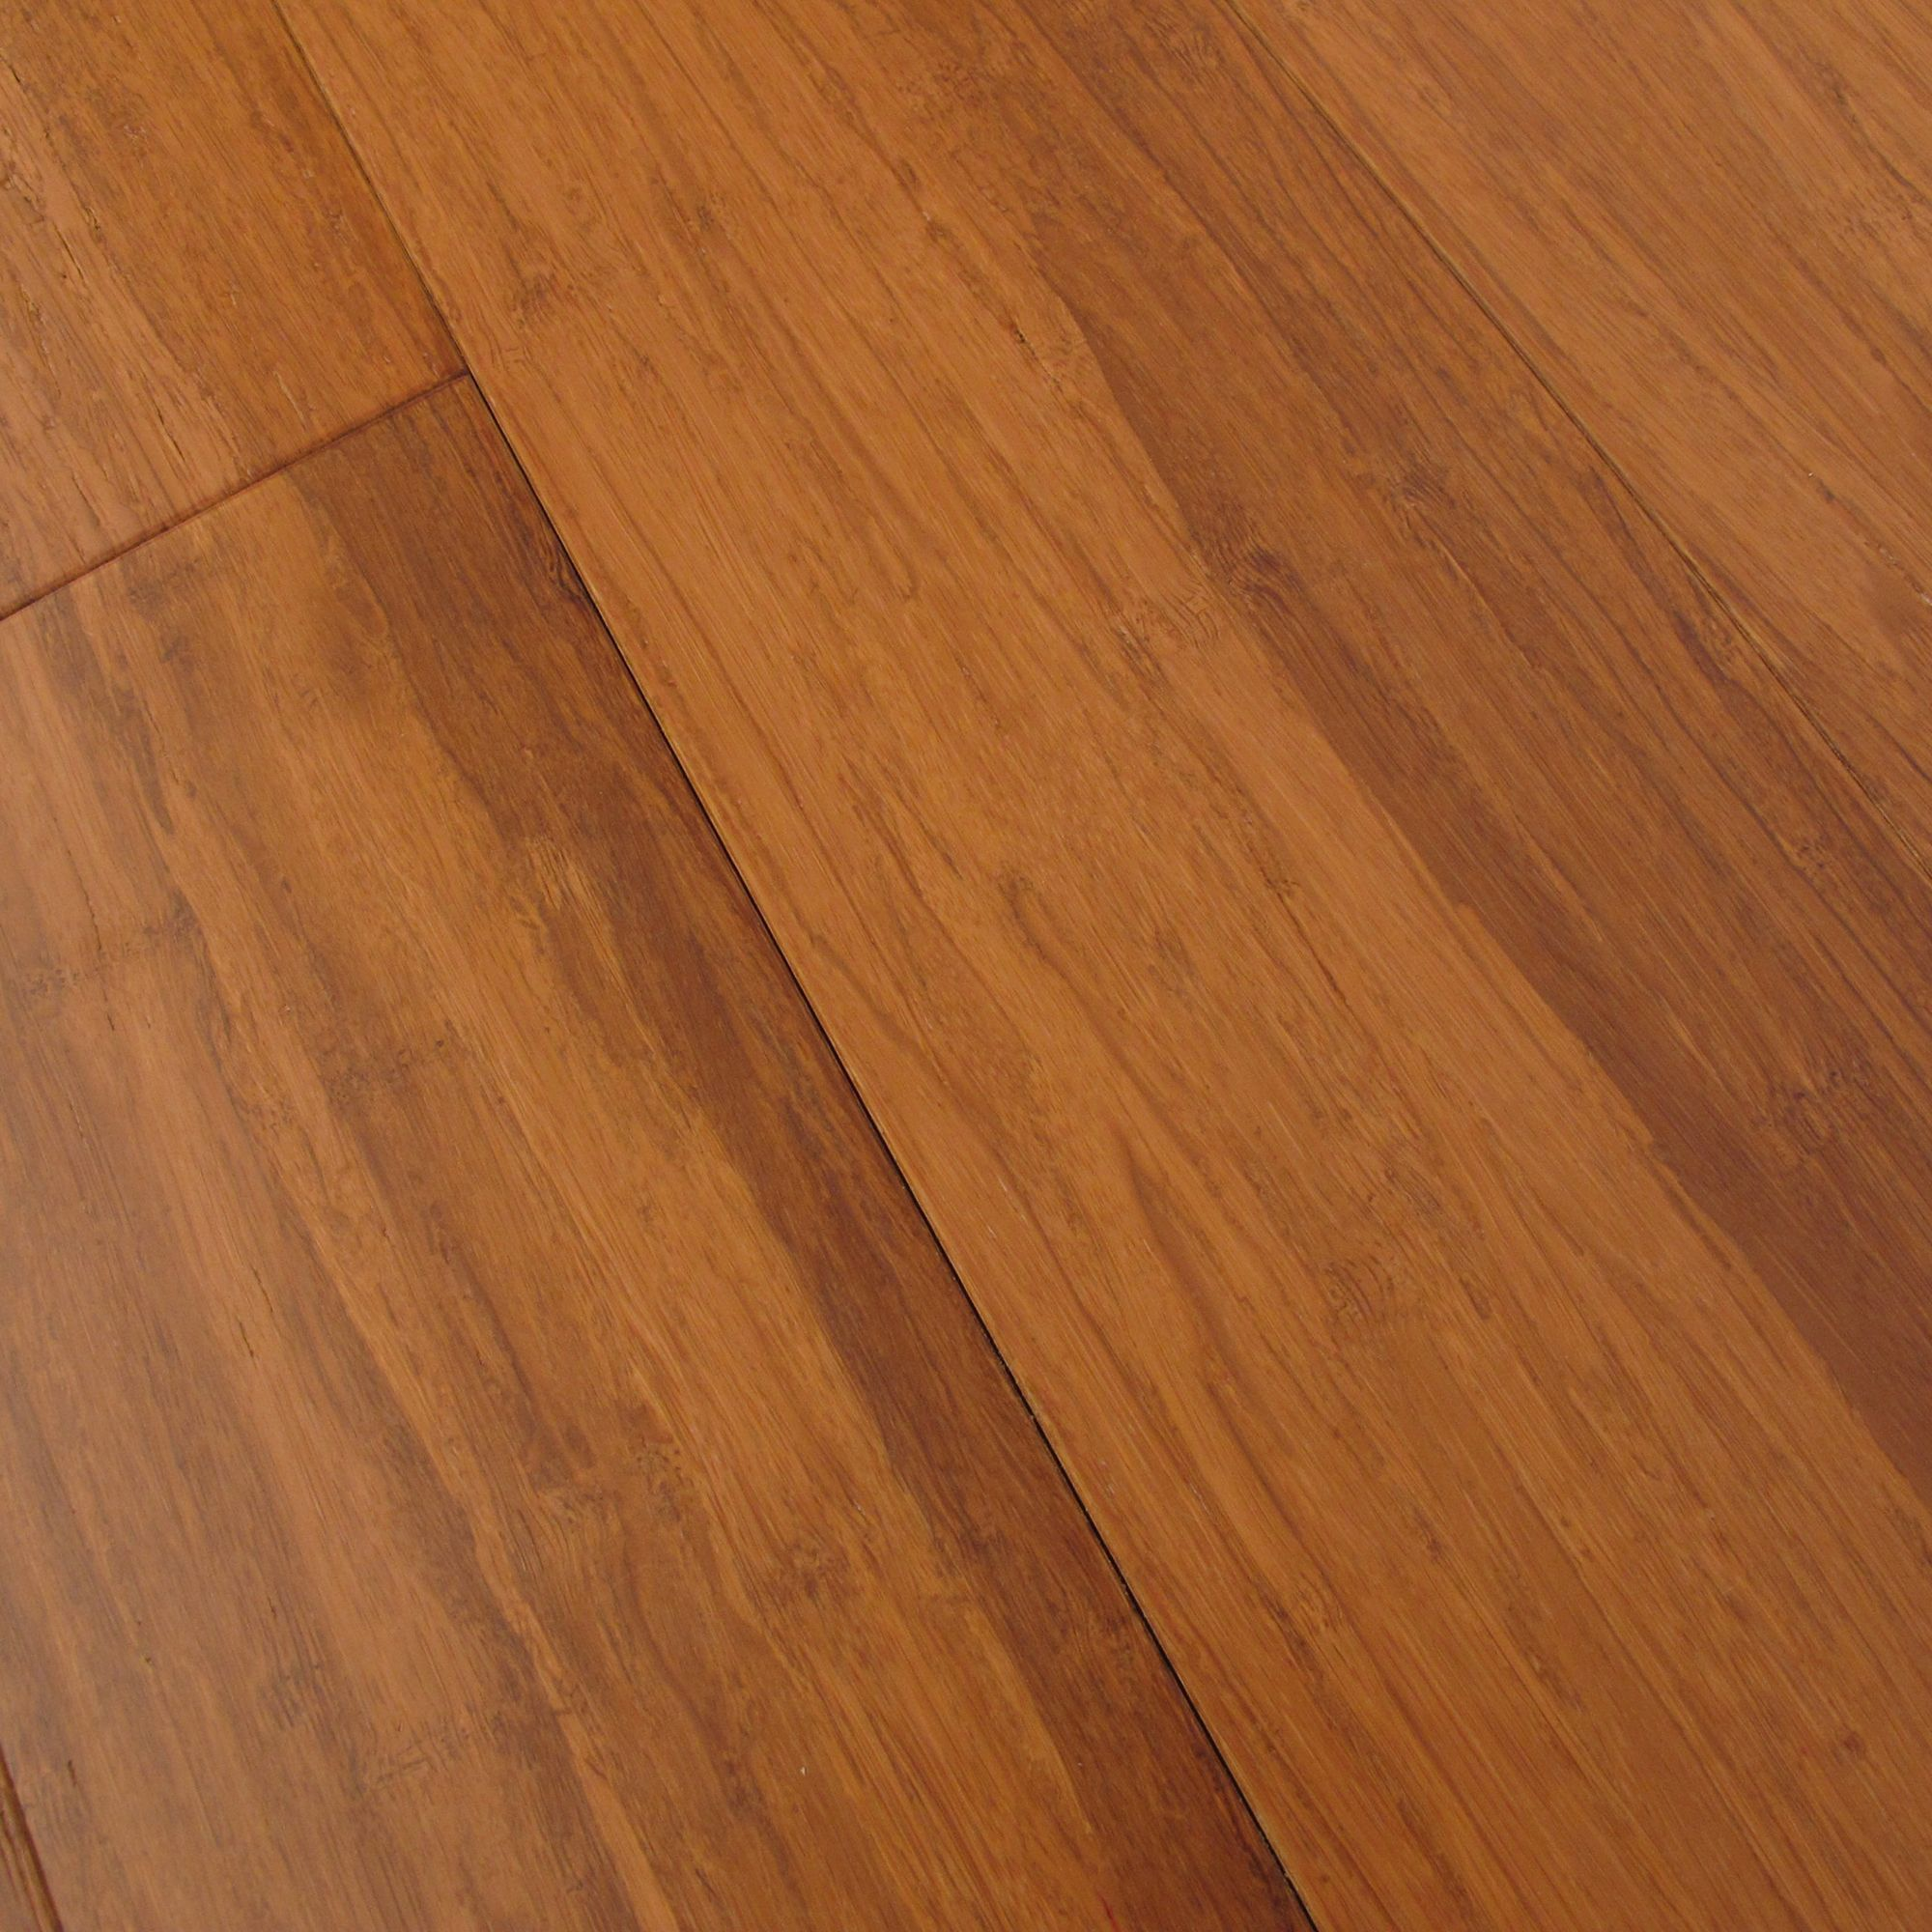 Colours Pandero Rustic Bamboo Flooring 1 684m² Pack